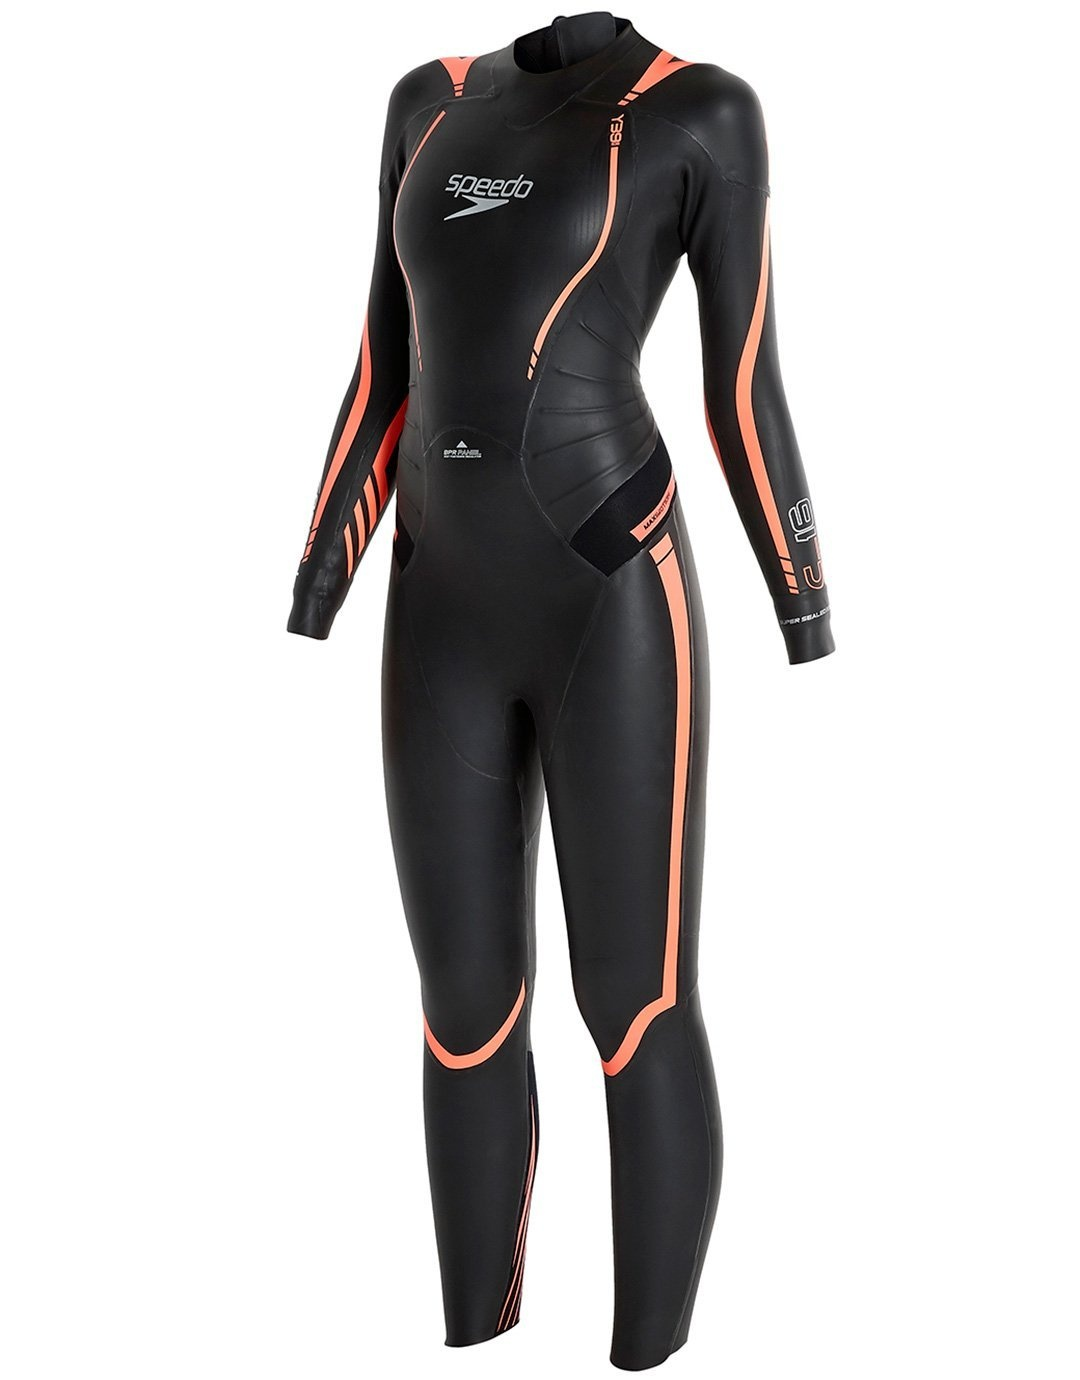 Speedo Wetsuit Sports   Outdoors  Buy Online from Fishpond.co.nz f04ced72c